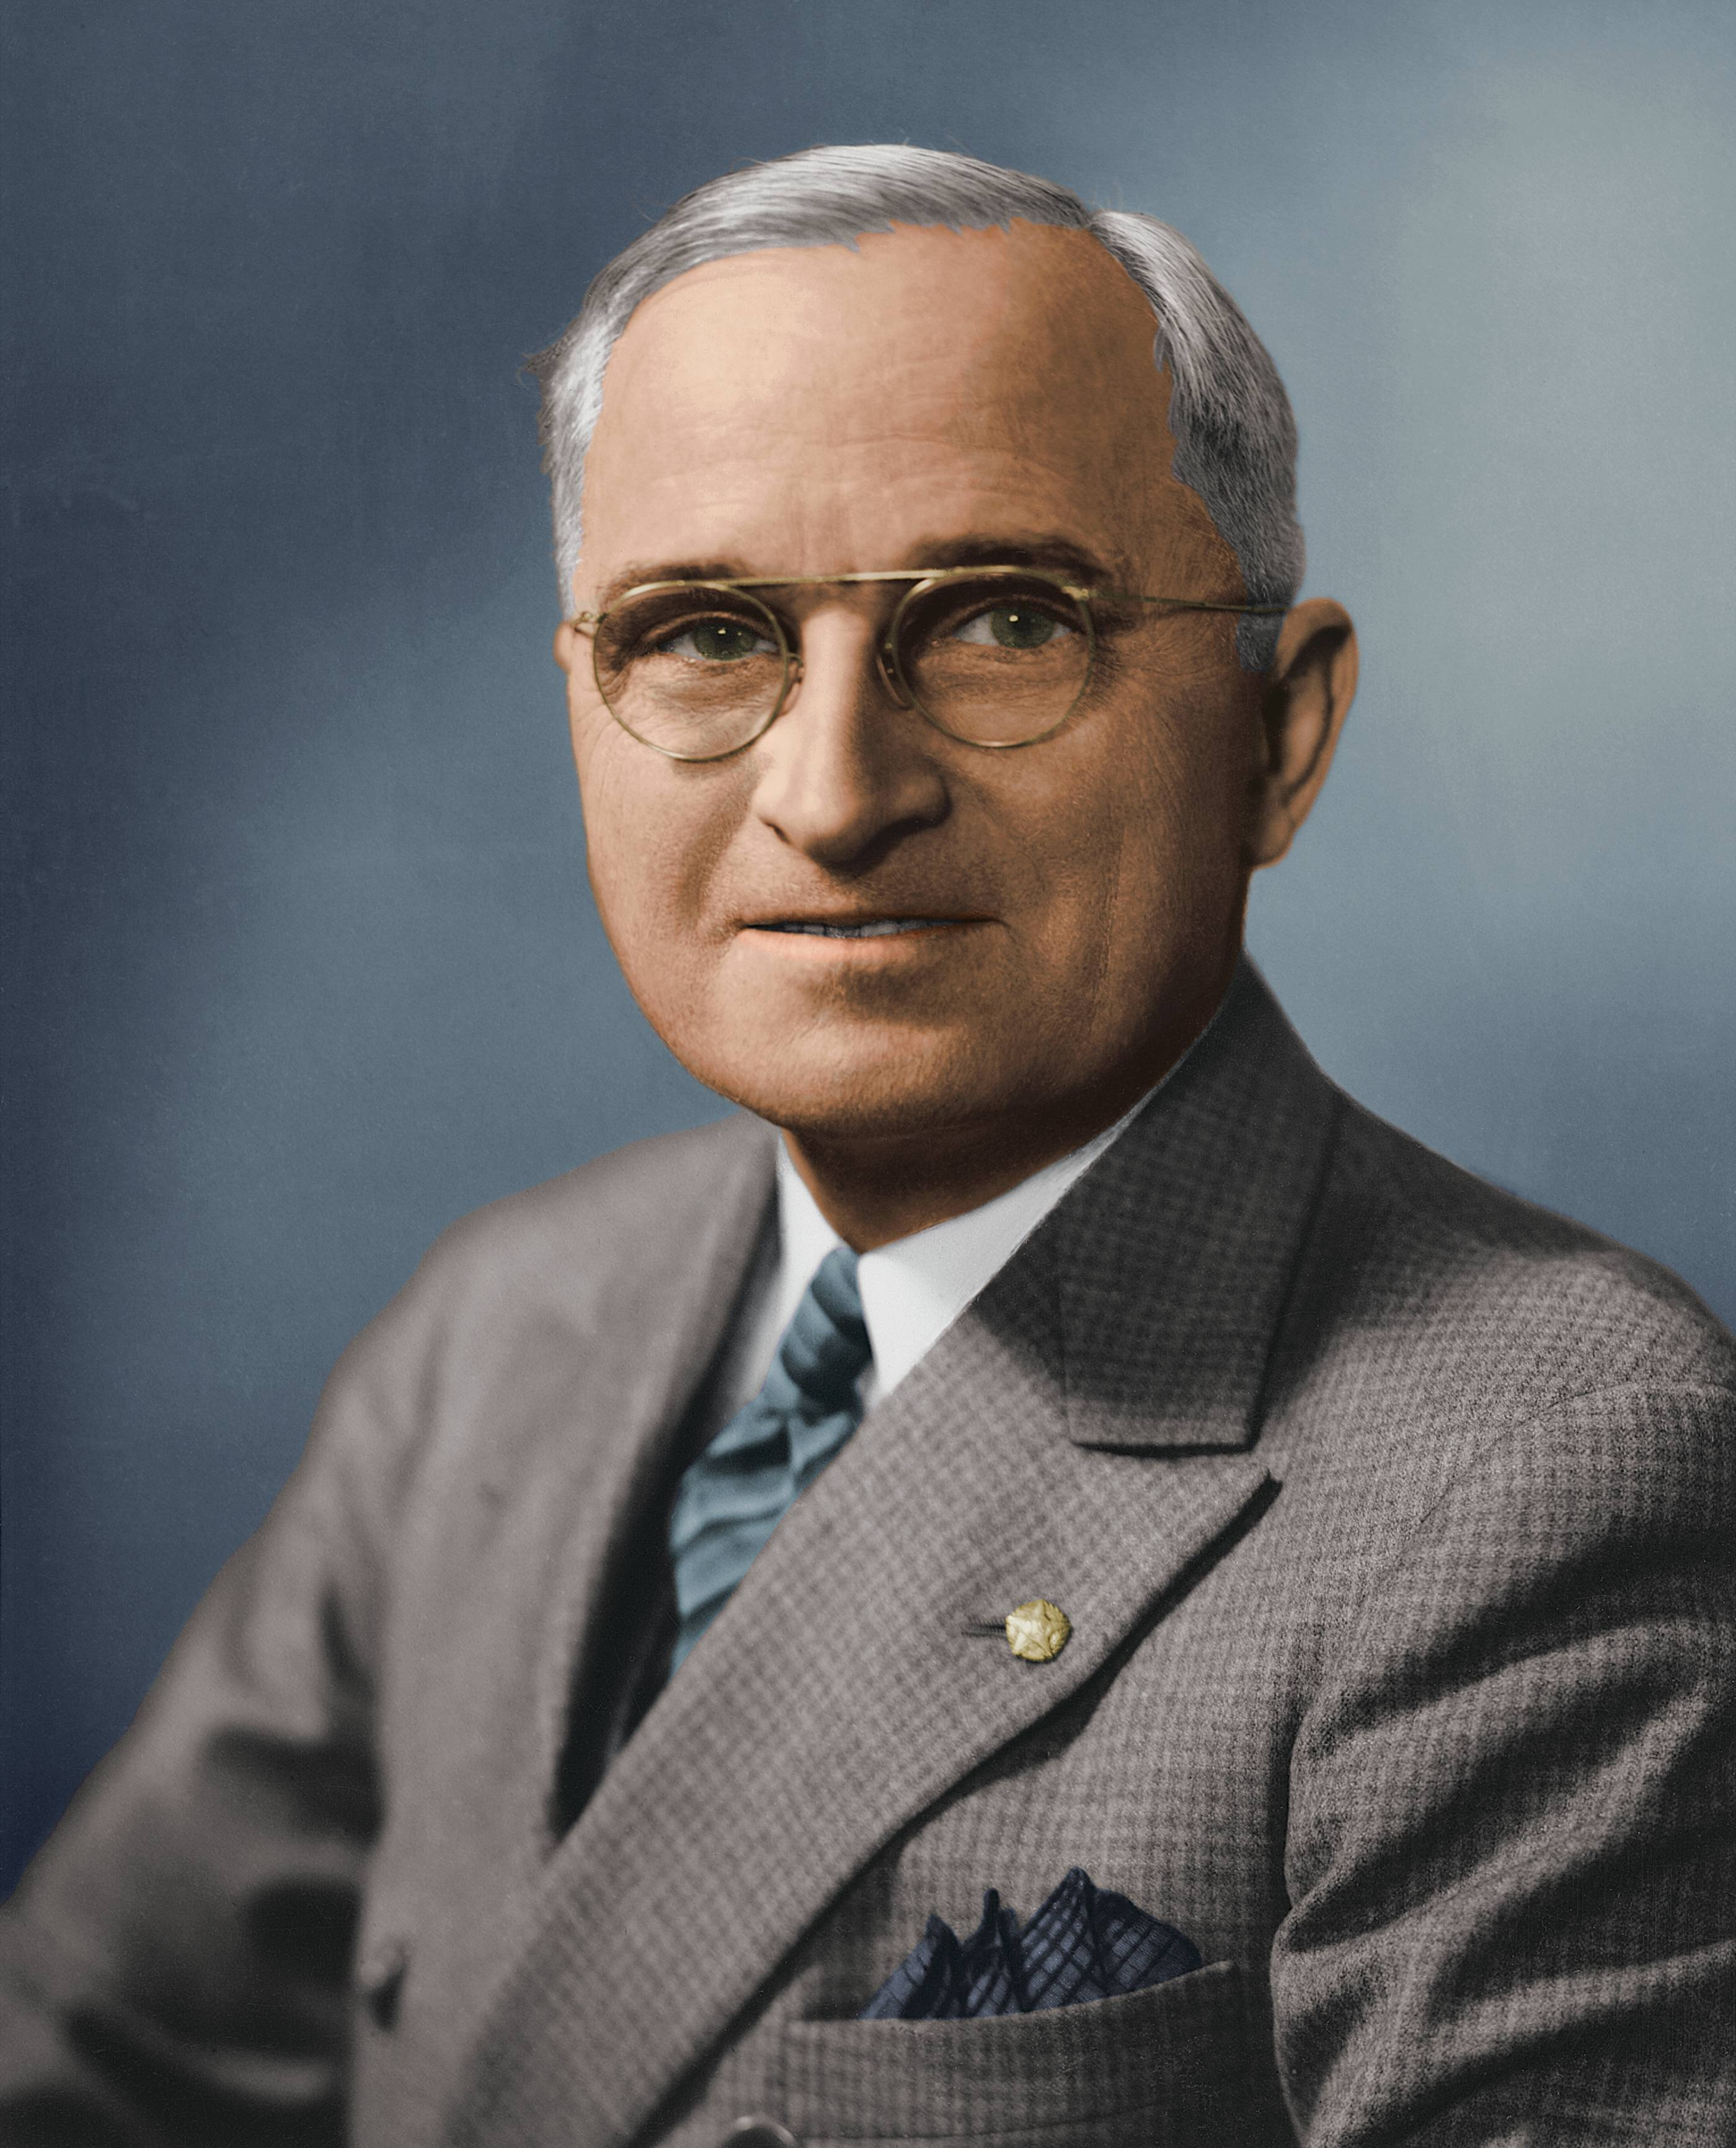 Home Design Online Magazine A Thought For Today Harry S Truman Ruth Chafin